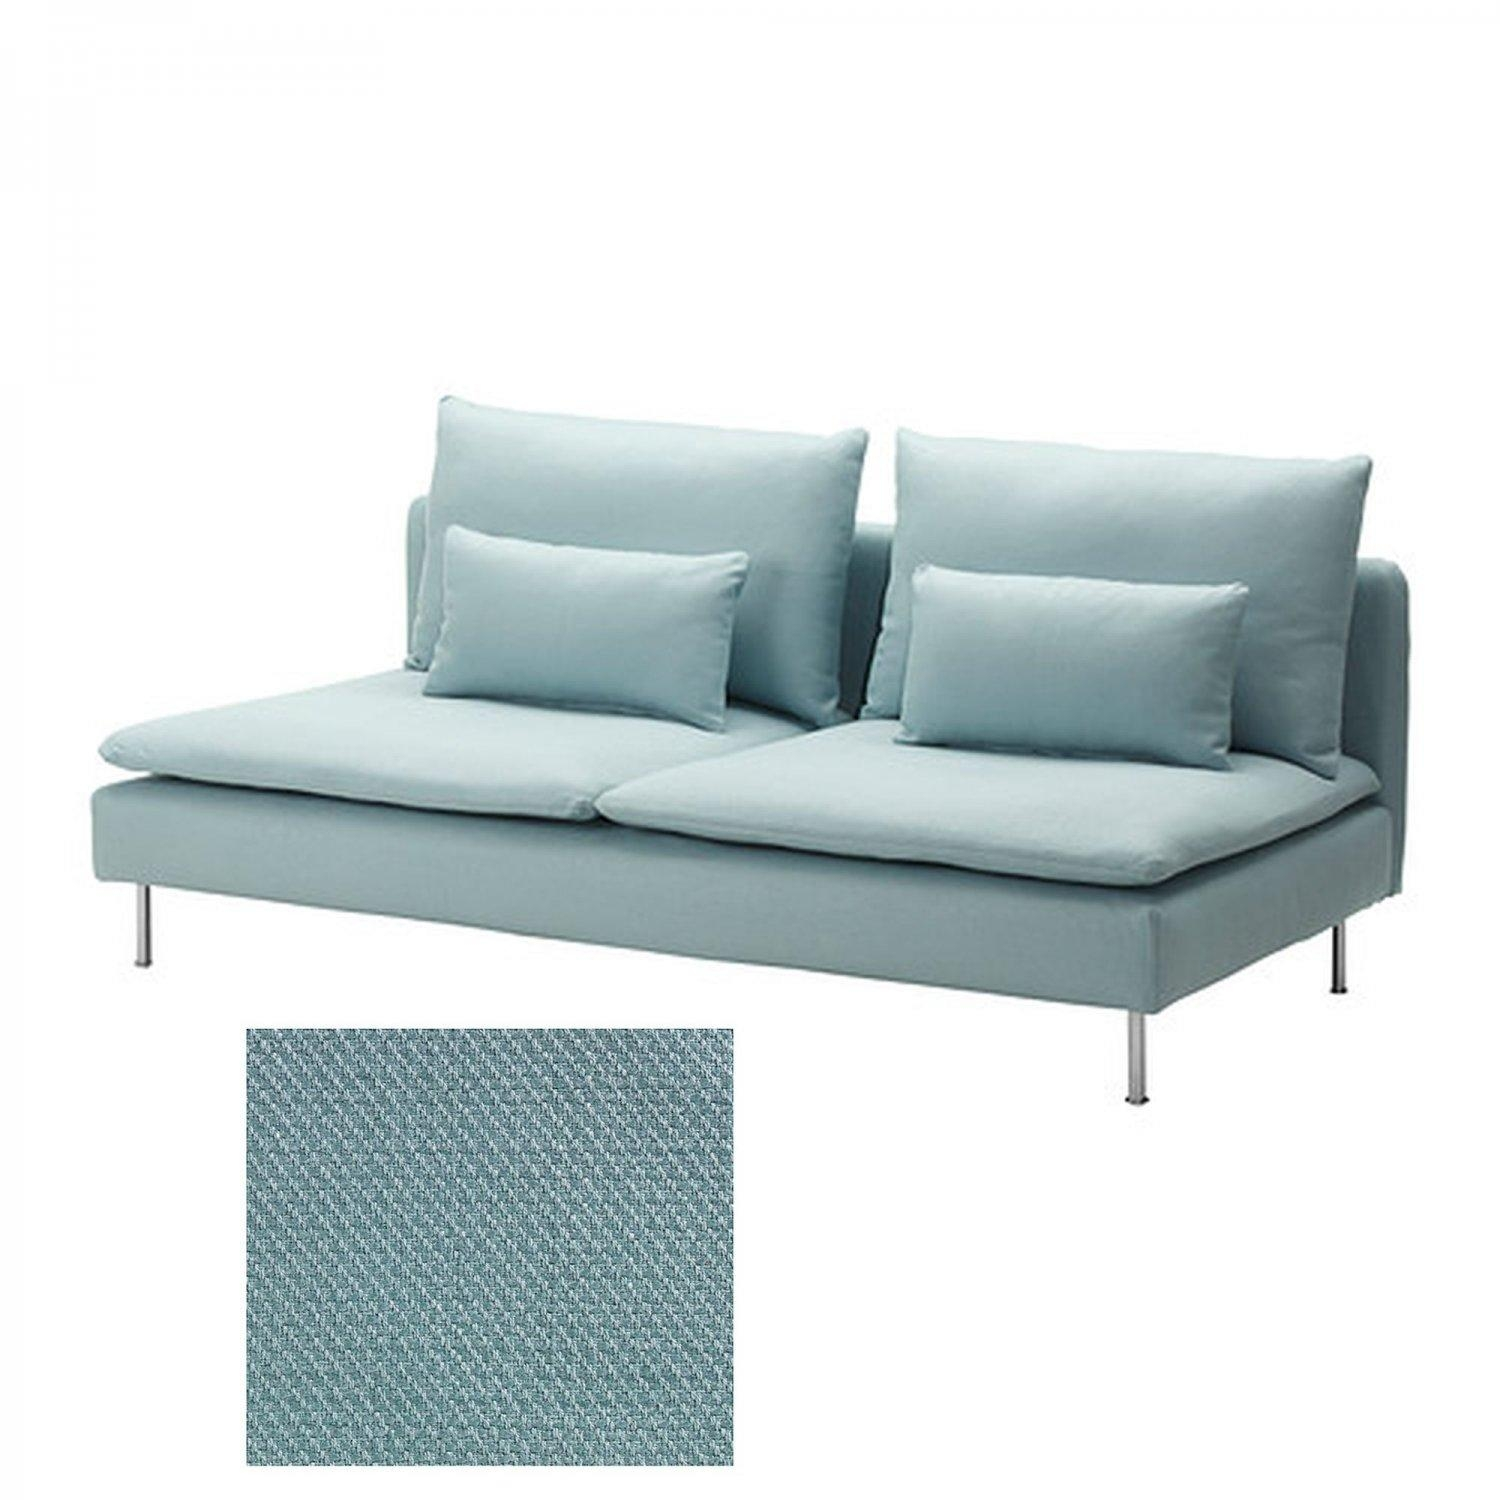 Turquoise Loveseat Slipcover Images – Reverse Search Pertaining To Turquoise Sofa Covers (Image 20 of 20)